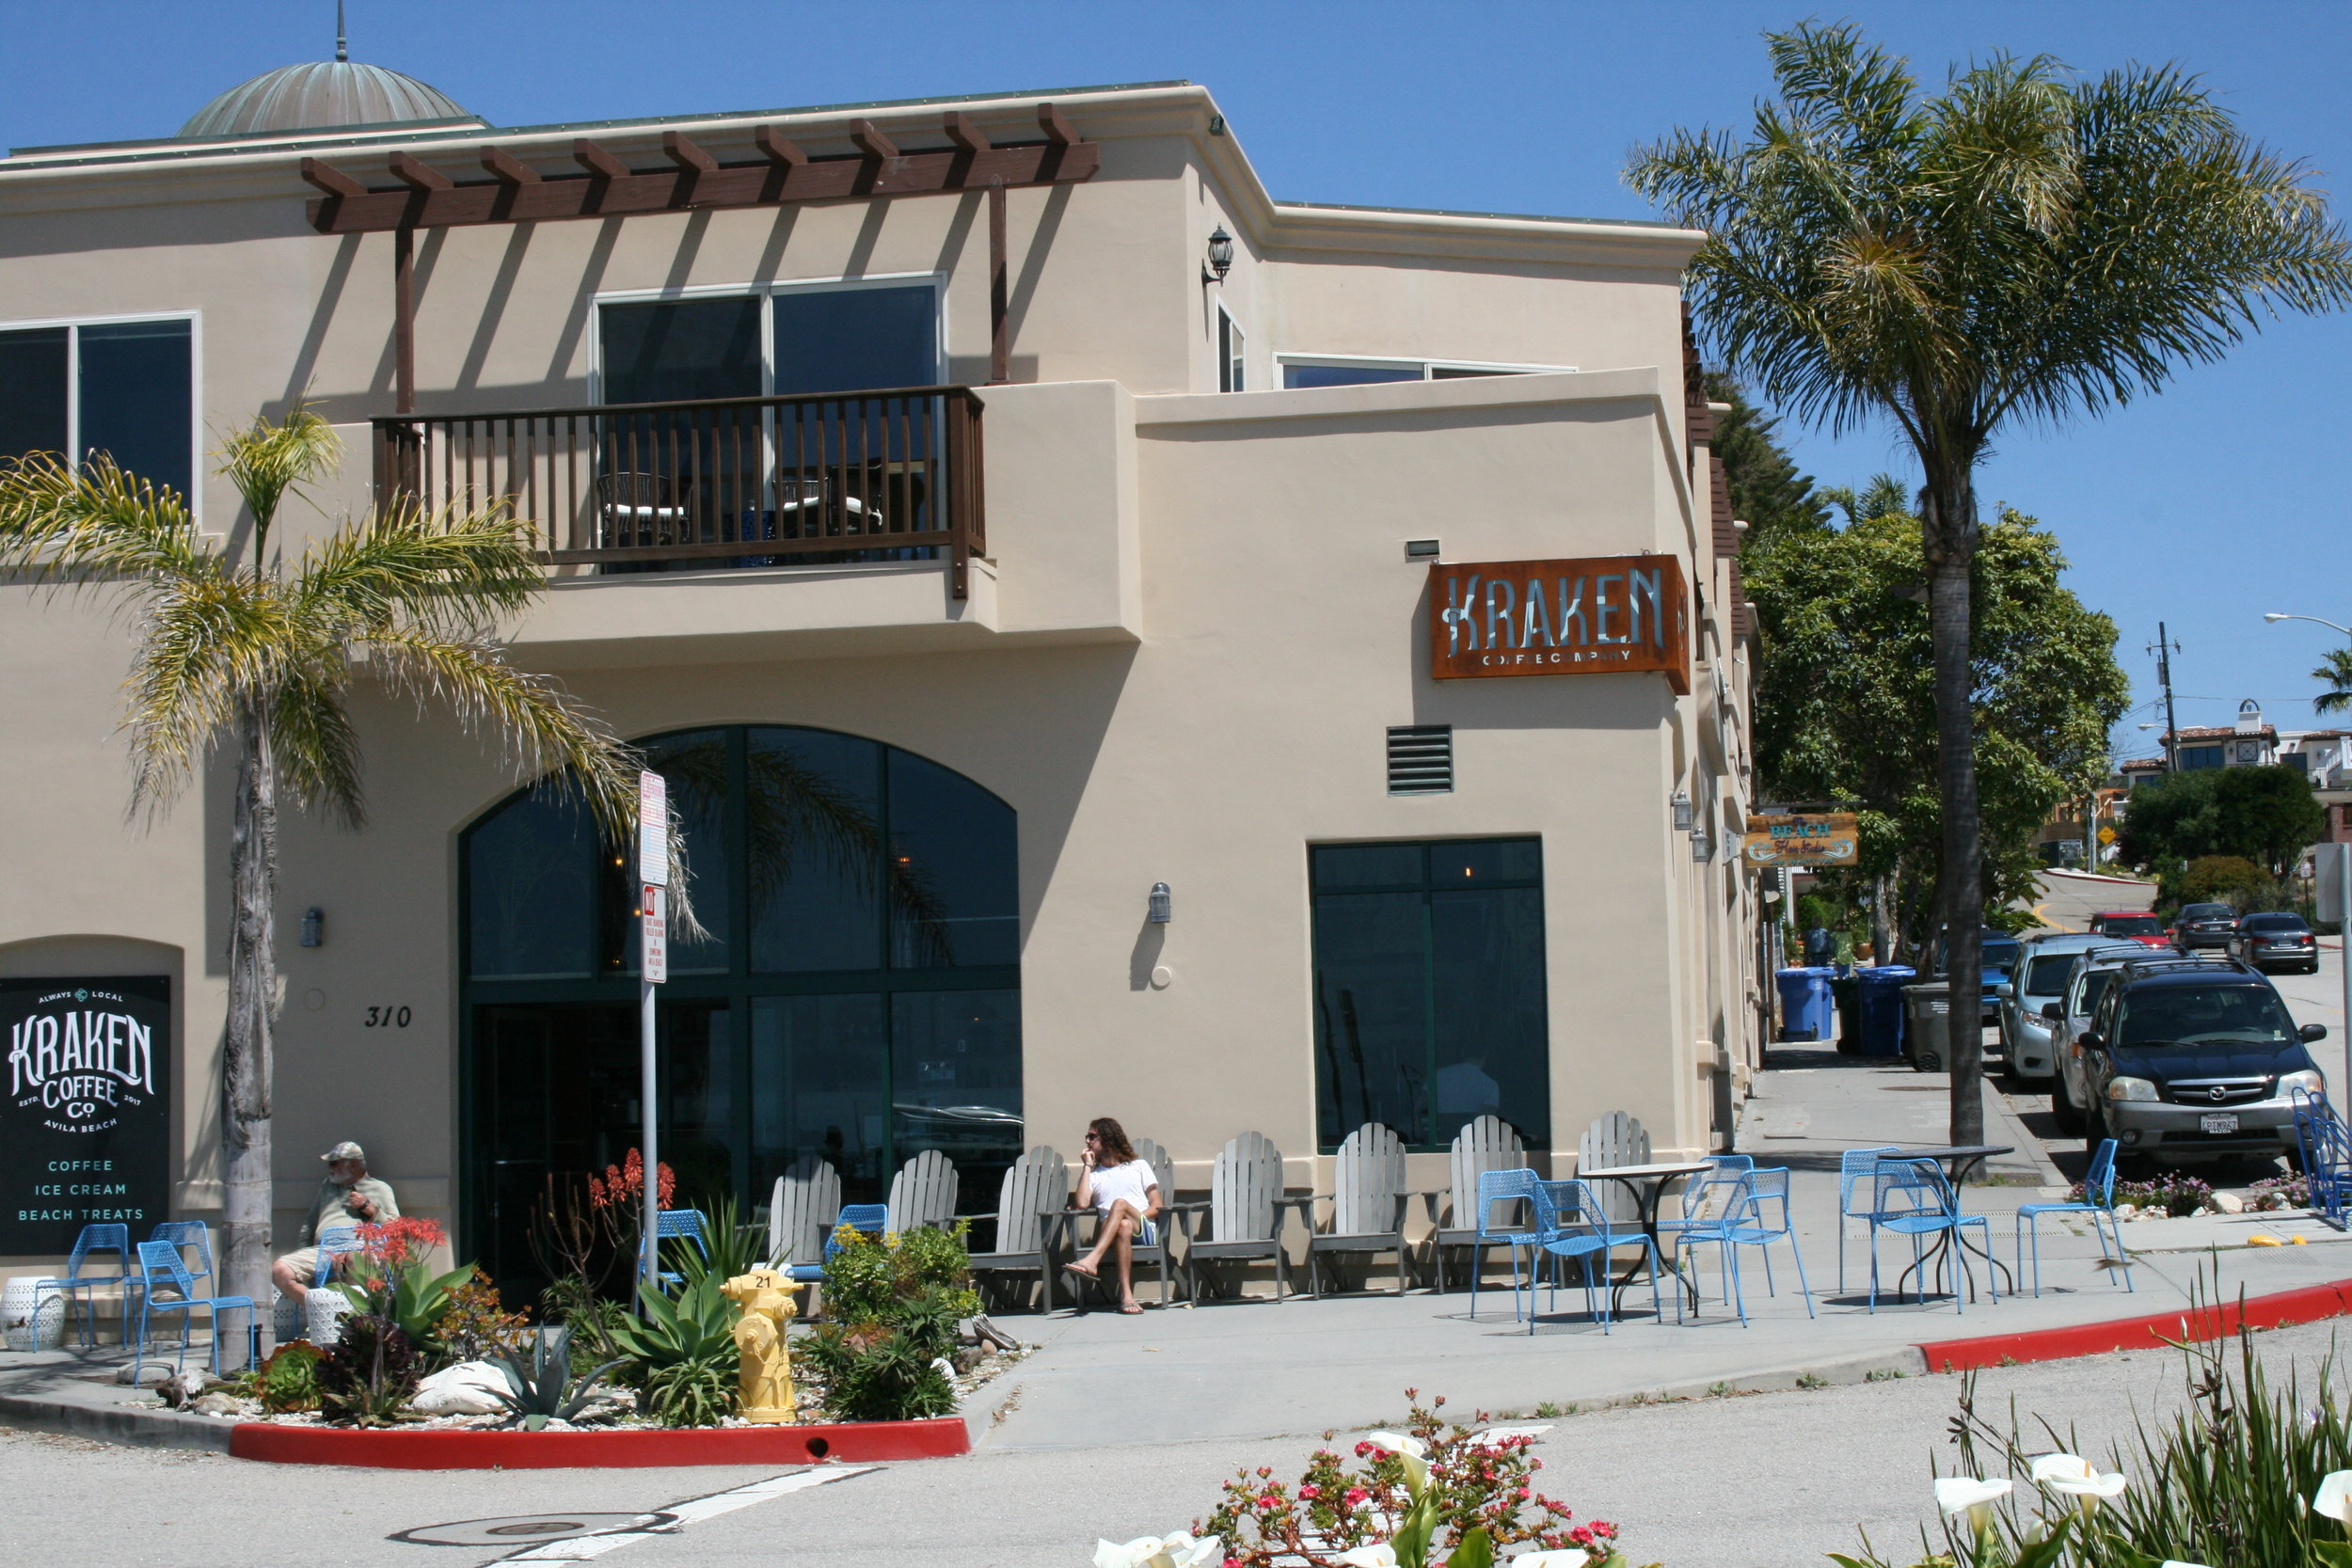 Get your sea legs    Kraken Coffee Co. is located at 310 Front St. in Avila Beach. For more information and hours, call 439-1177 or visit the business on  Facebook .